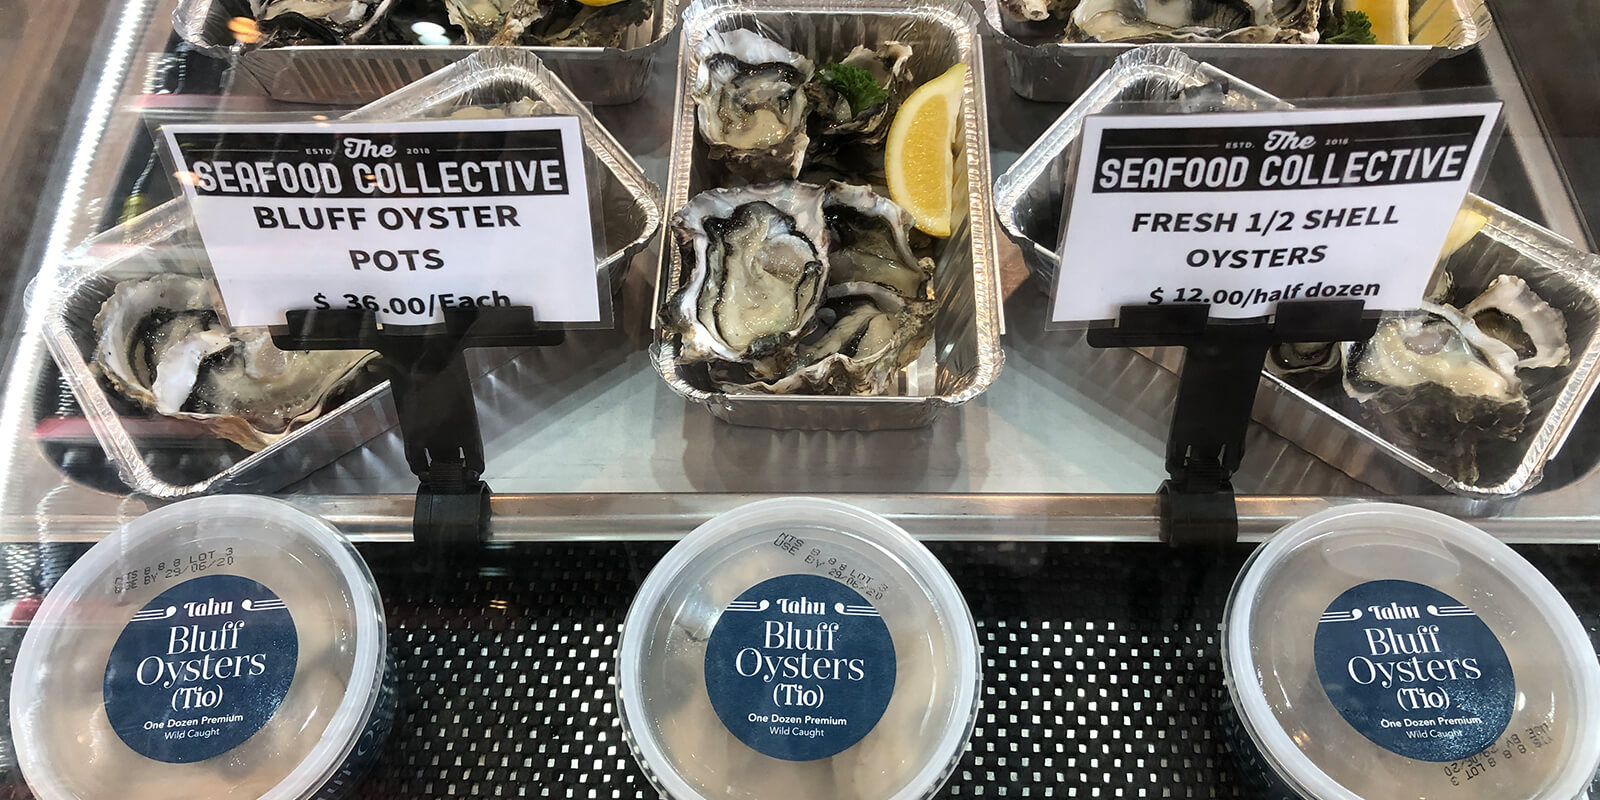 Difference between Bluff & Pacific Oysters